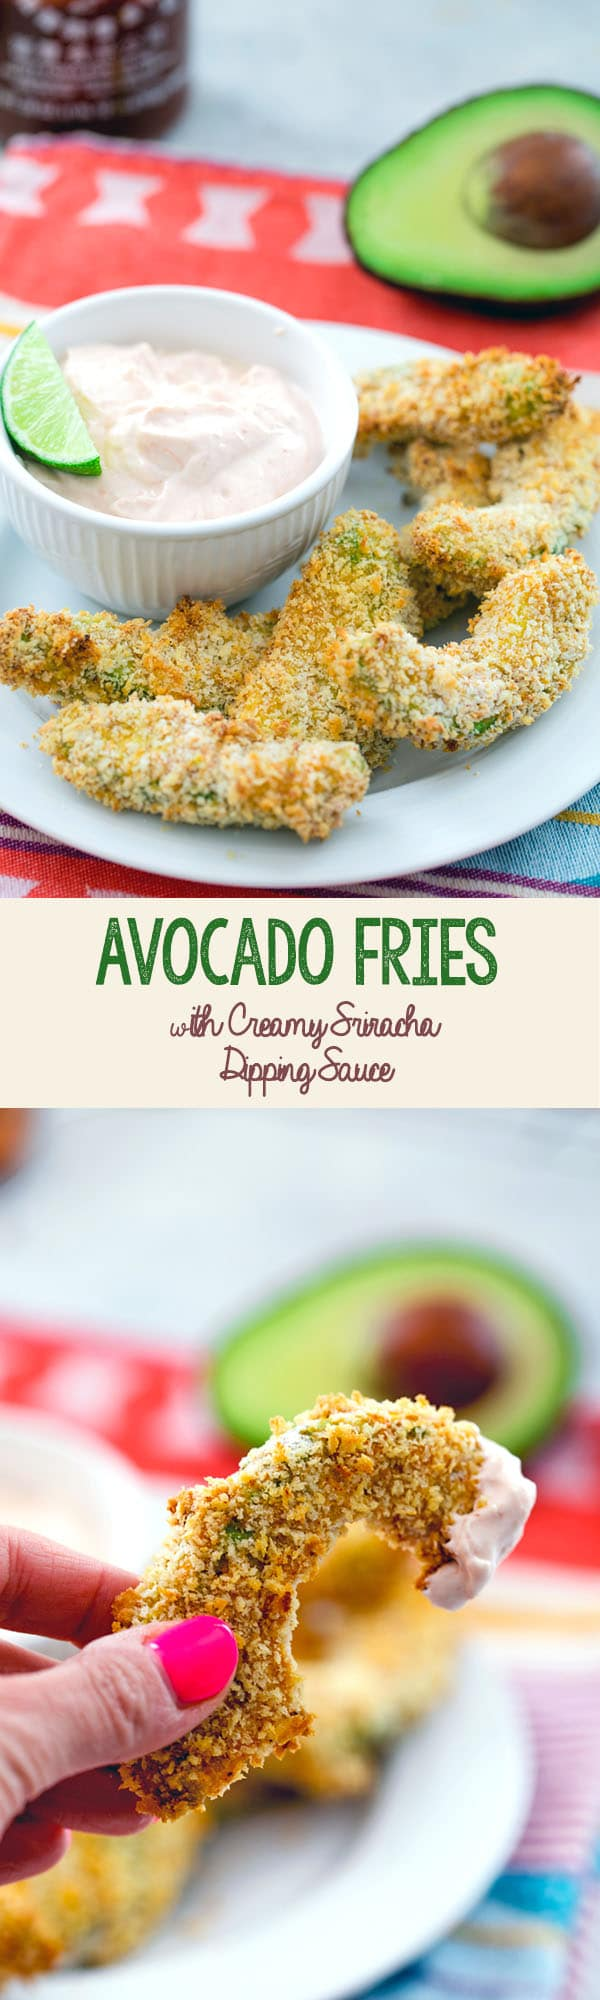 Avocado Fries with Creamy Sriracha Dipping Sauce -- These avocado fries make for a perfectly crispy and flavorful snack, side dish, or party appetizer   wearenotmartha.com #avocado #avocadofries #panko #appetizer #sidedish